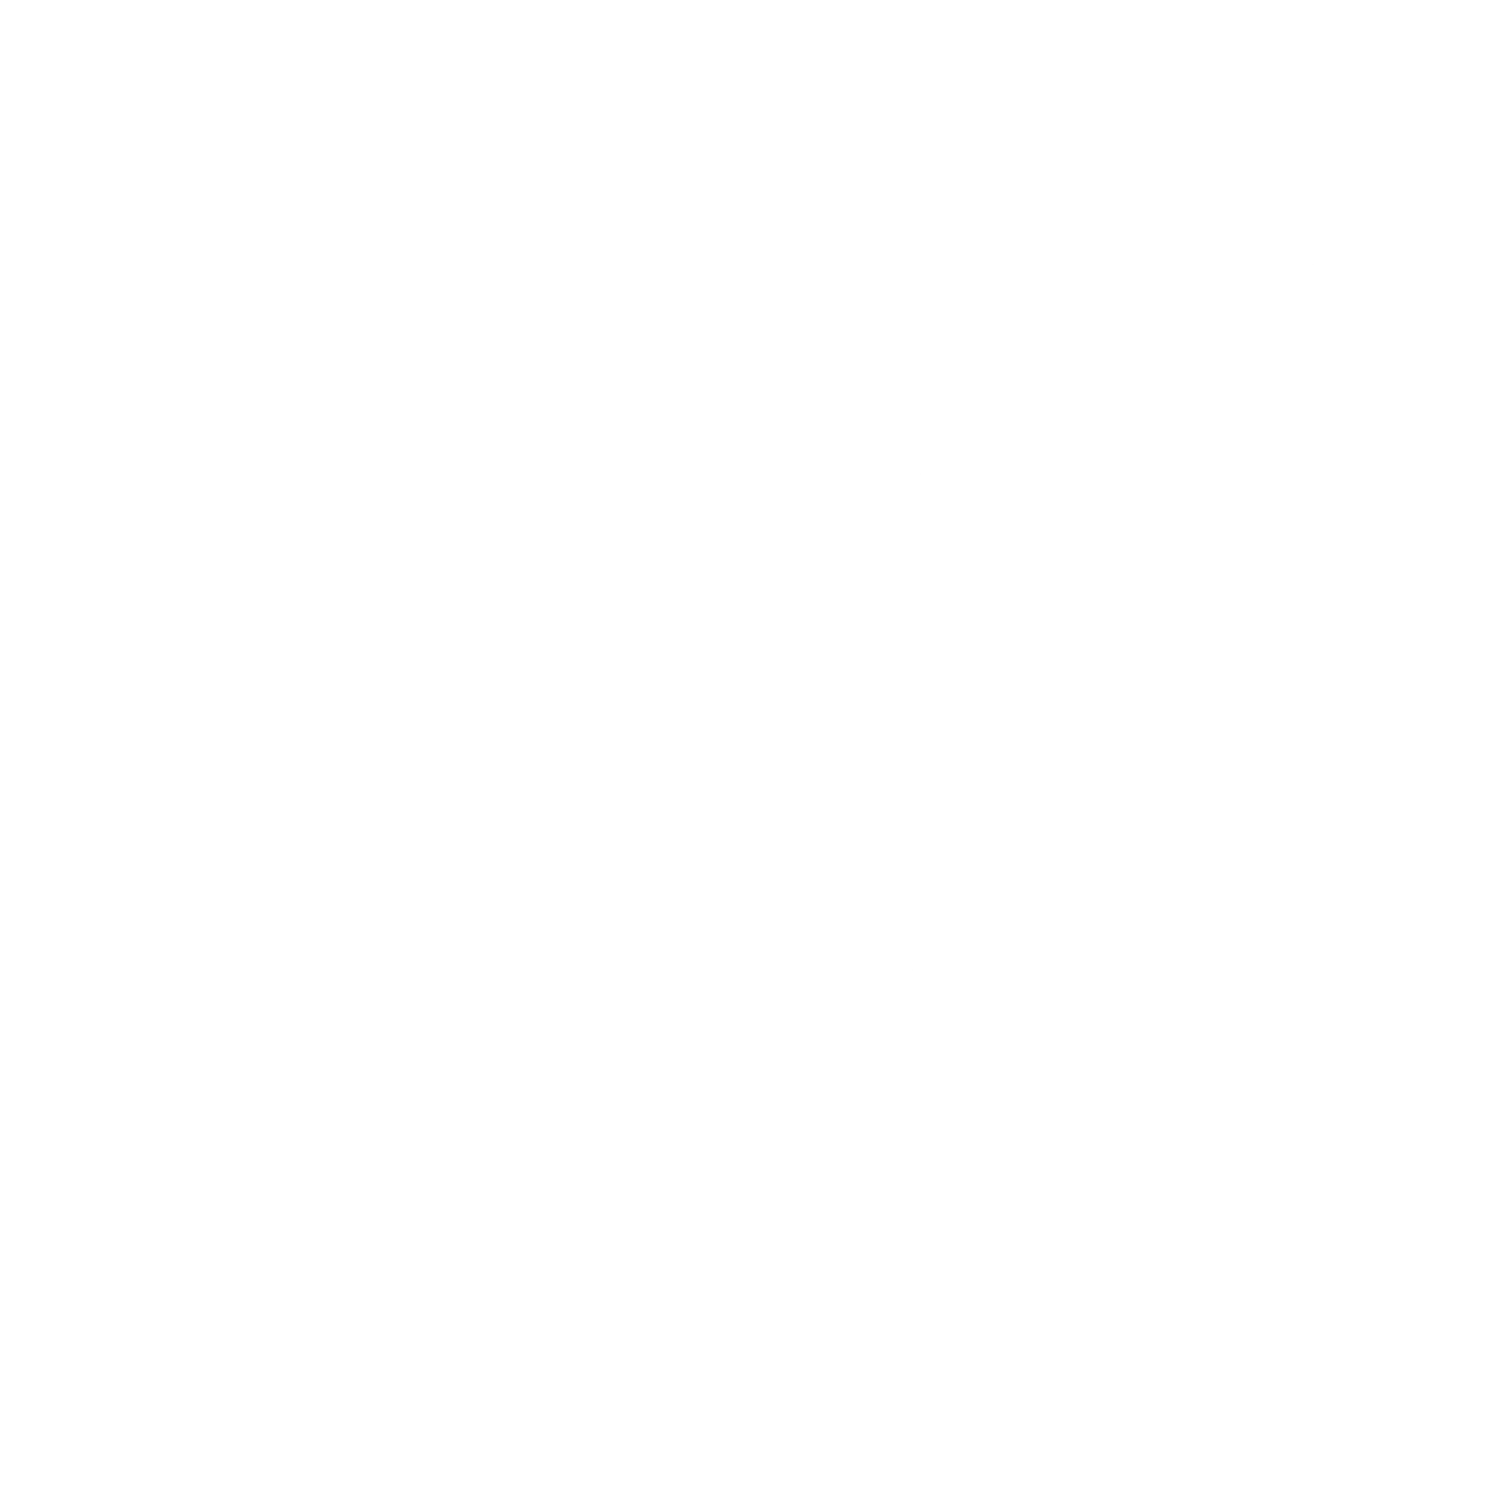 Deck Night